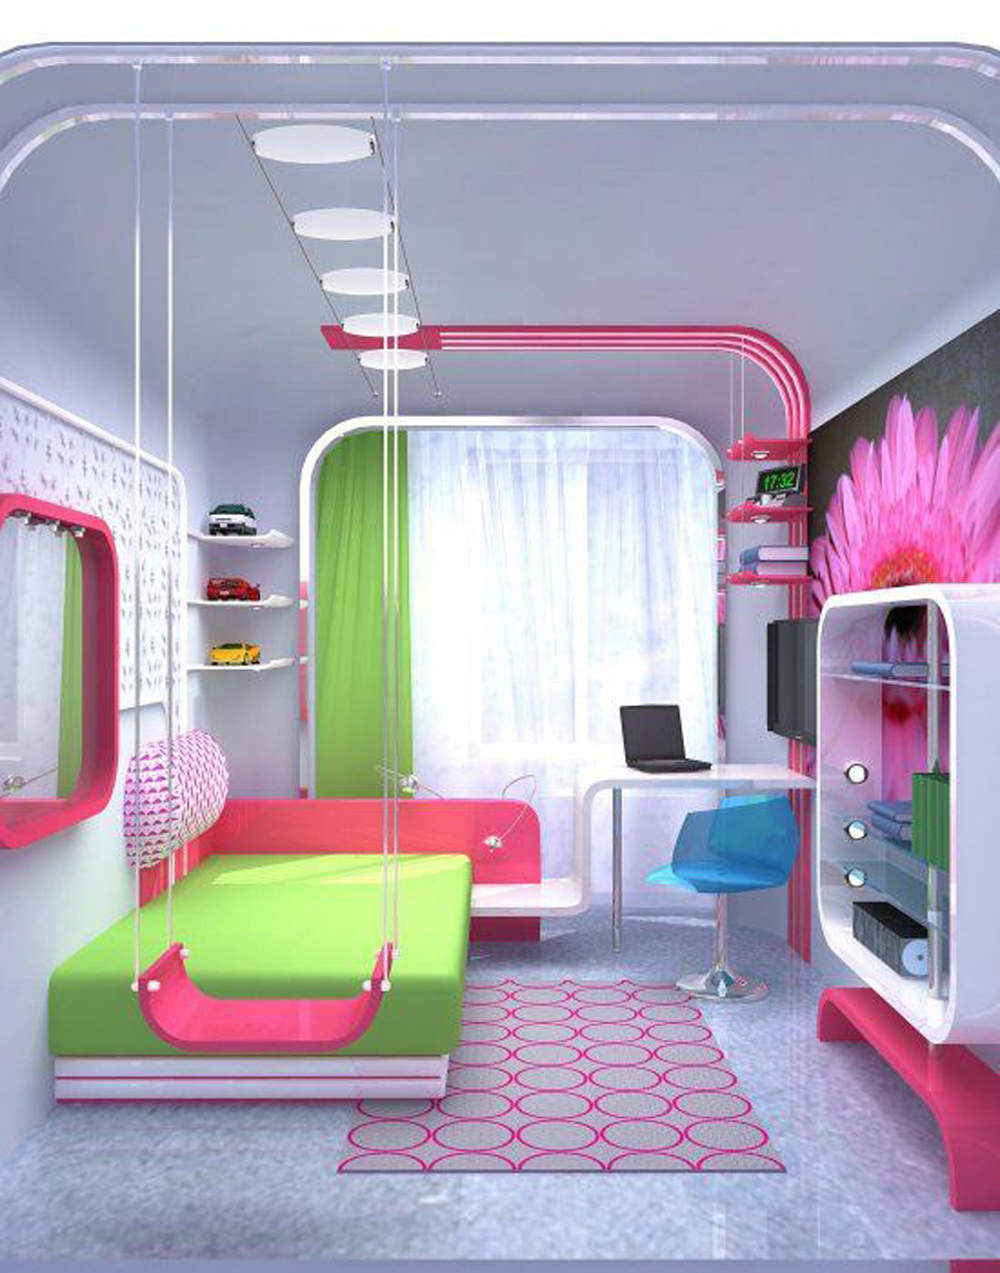 Stylish colorful bedrooms for girls allarchitecturedesigns - Photos of girls bedroom ...